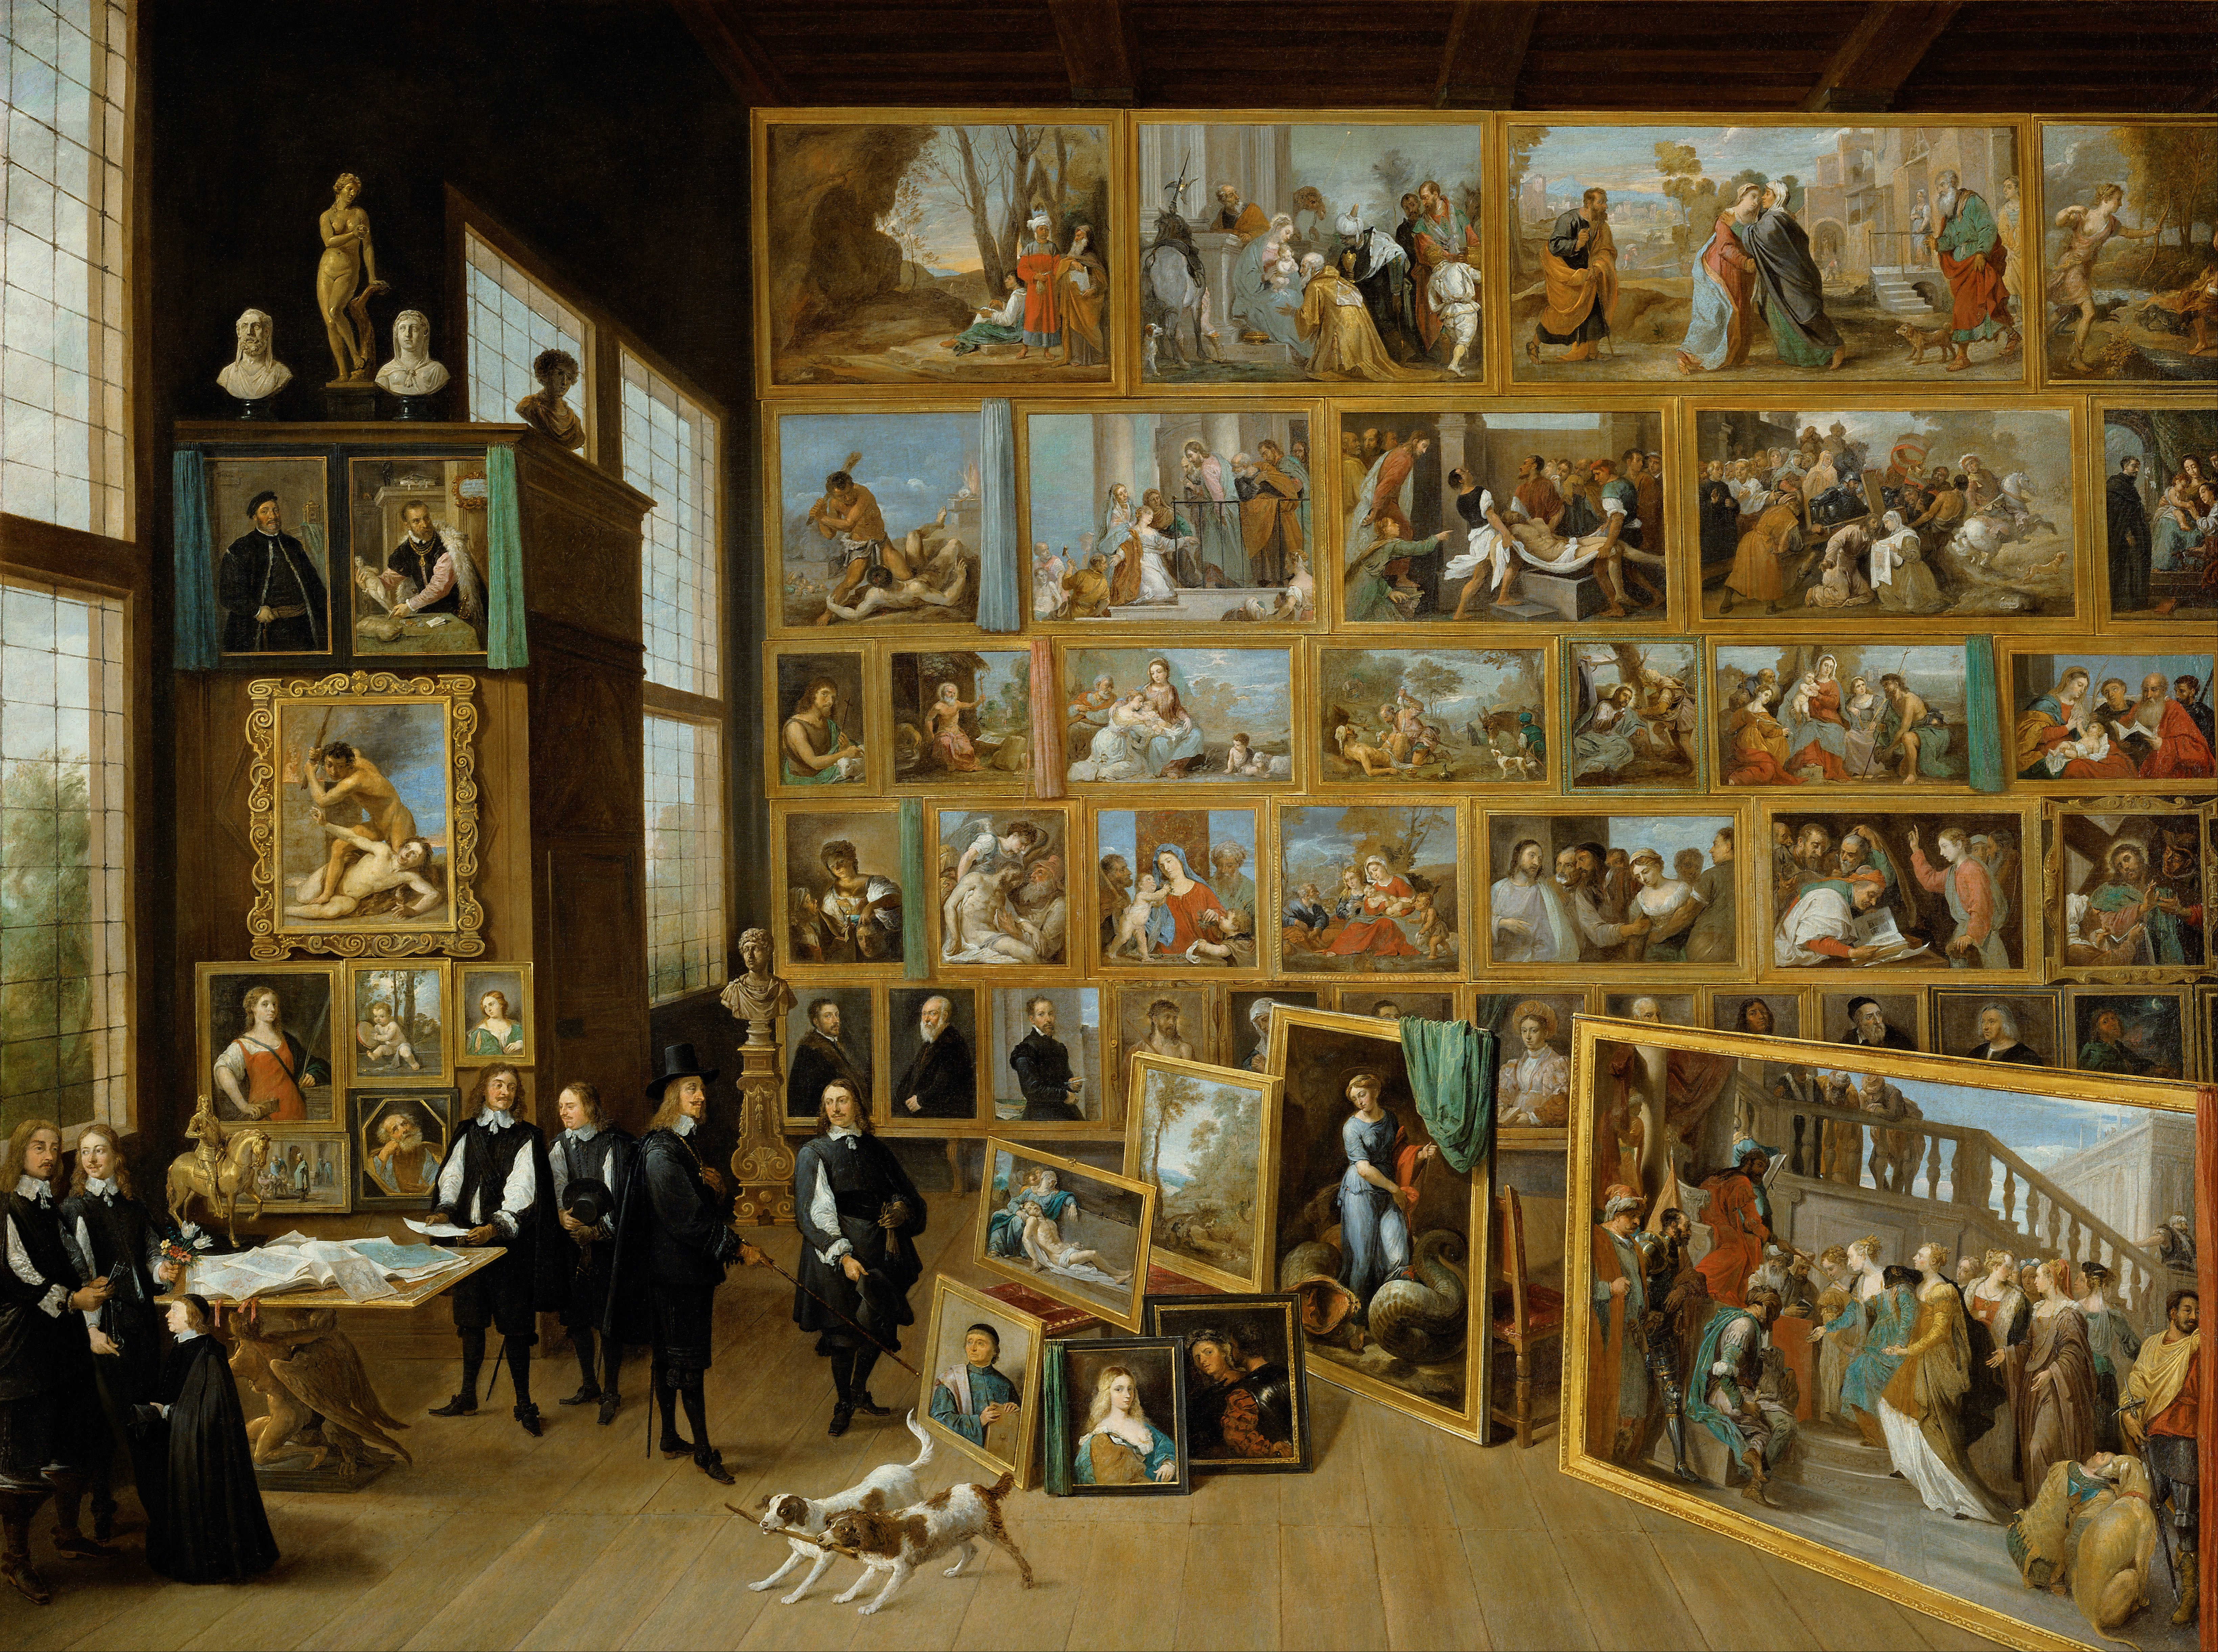 David Teniers Younger. The Art Collection of Archduke Leopold Wilhelm in Brussels, 1651